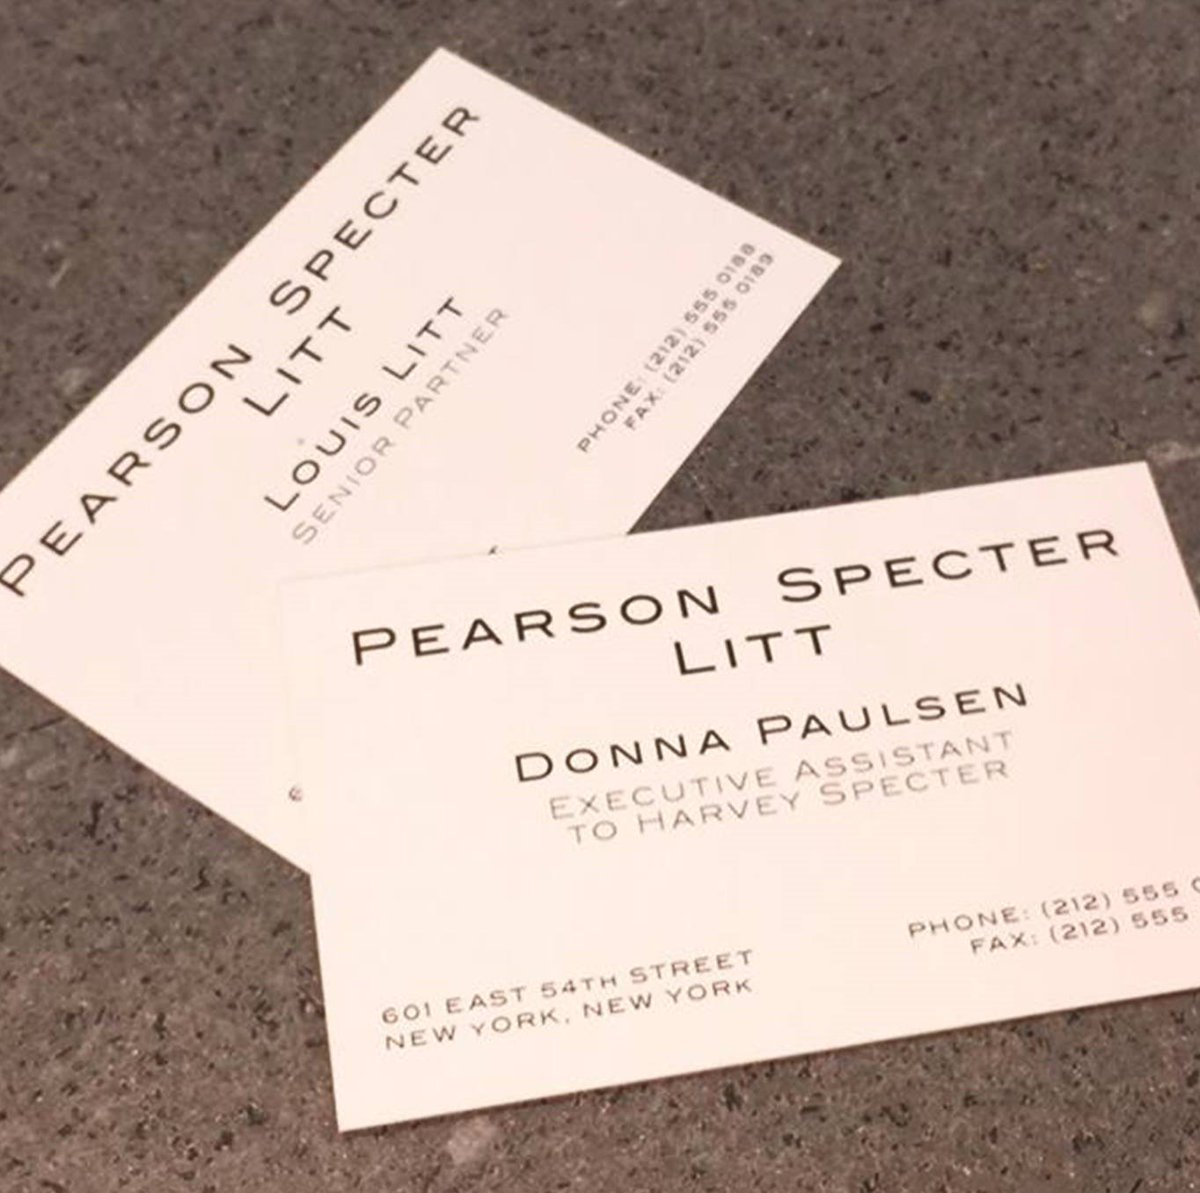 Alex S Suits More On Twitter Donna Paulsen Executive Wife To